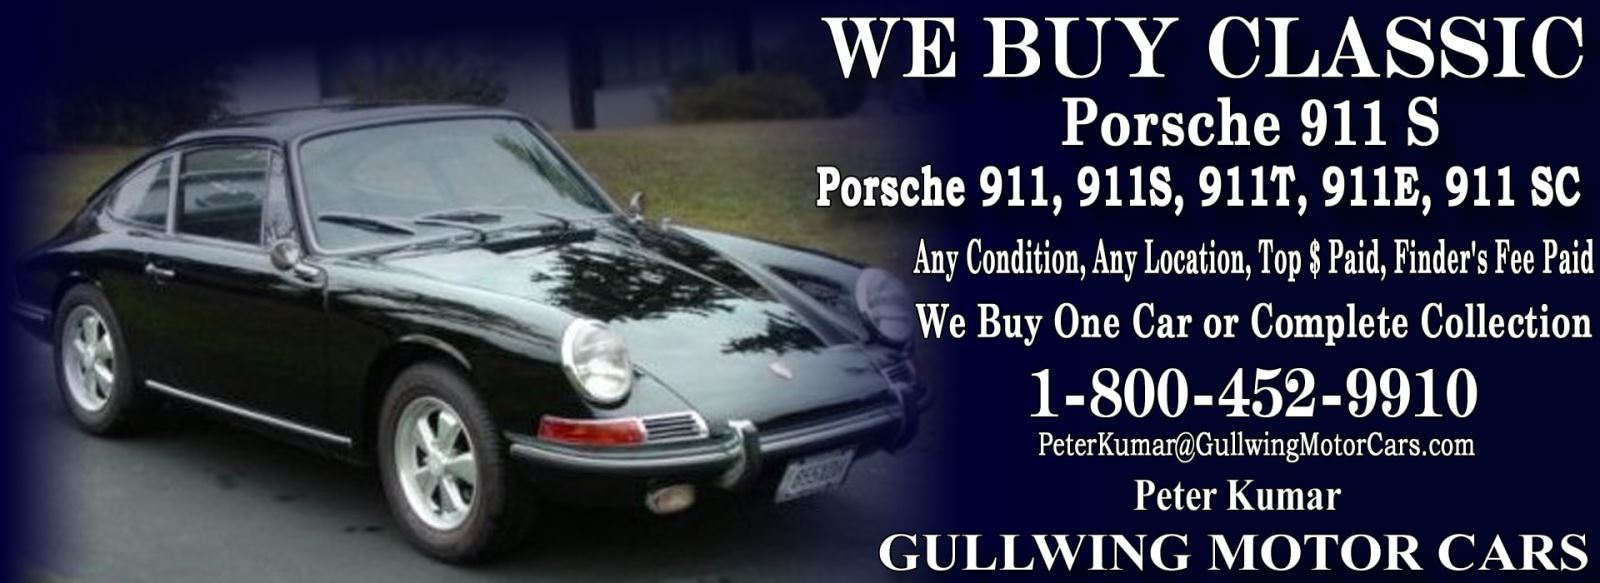 Classic Porsche 911S for sale, we buy vintage Porsche 911S. Call Peter Kumar. Gullwing Motor